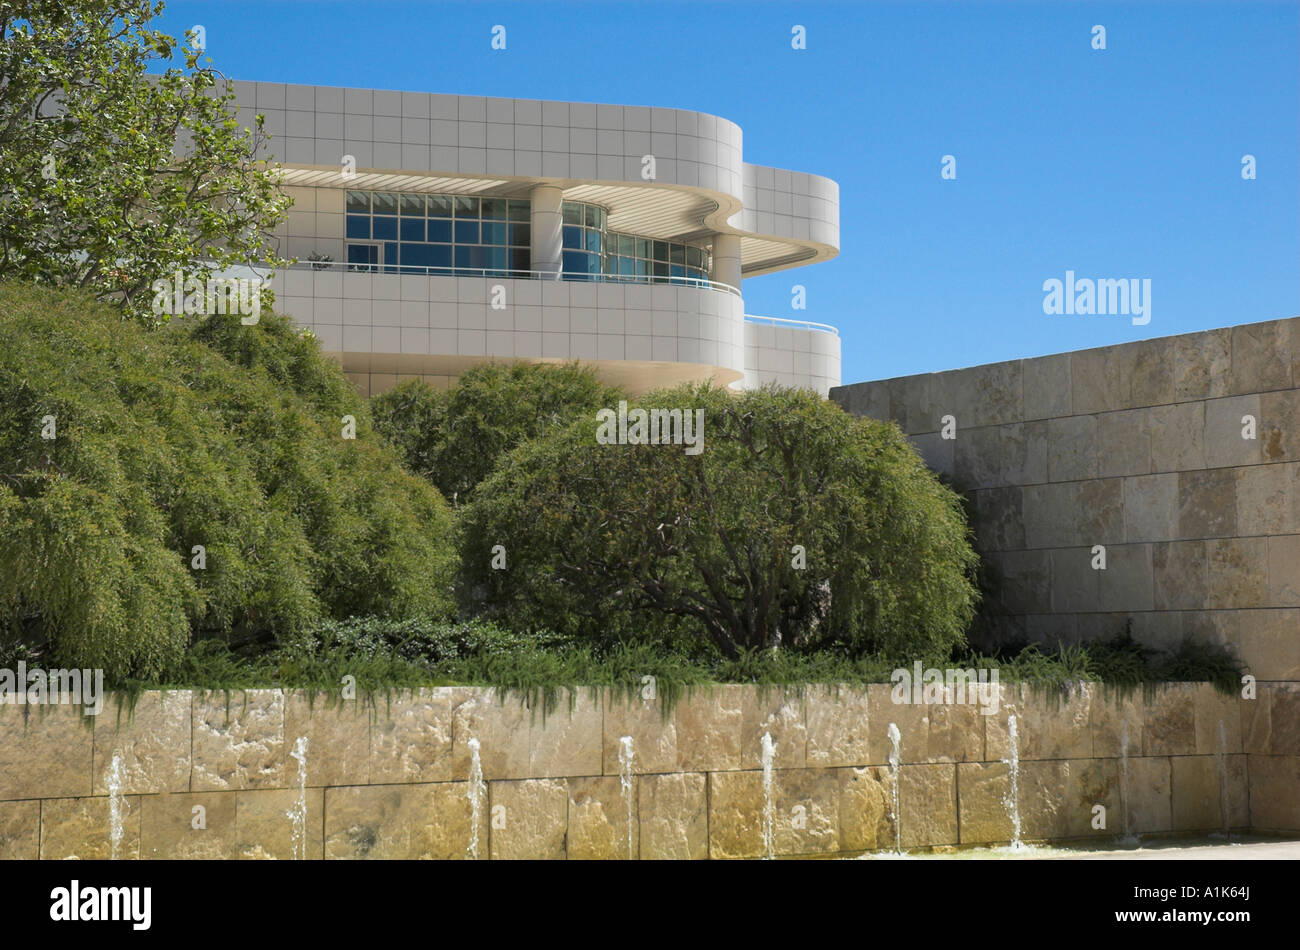 A View of the Getty Center, Los Angeles, California - Stock Image